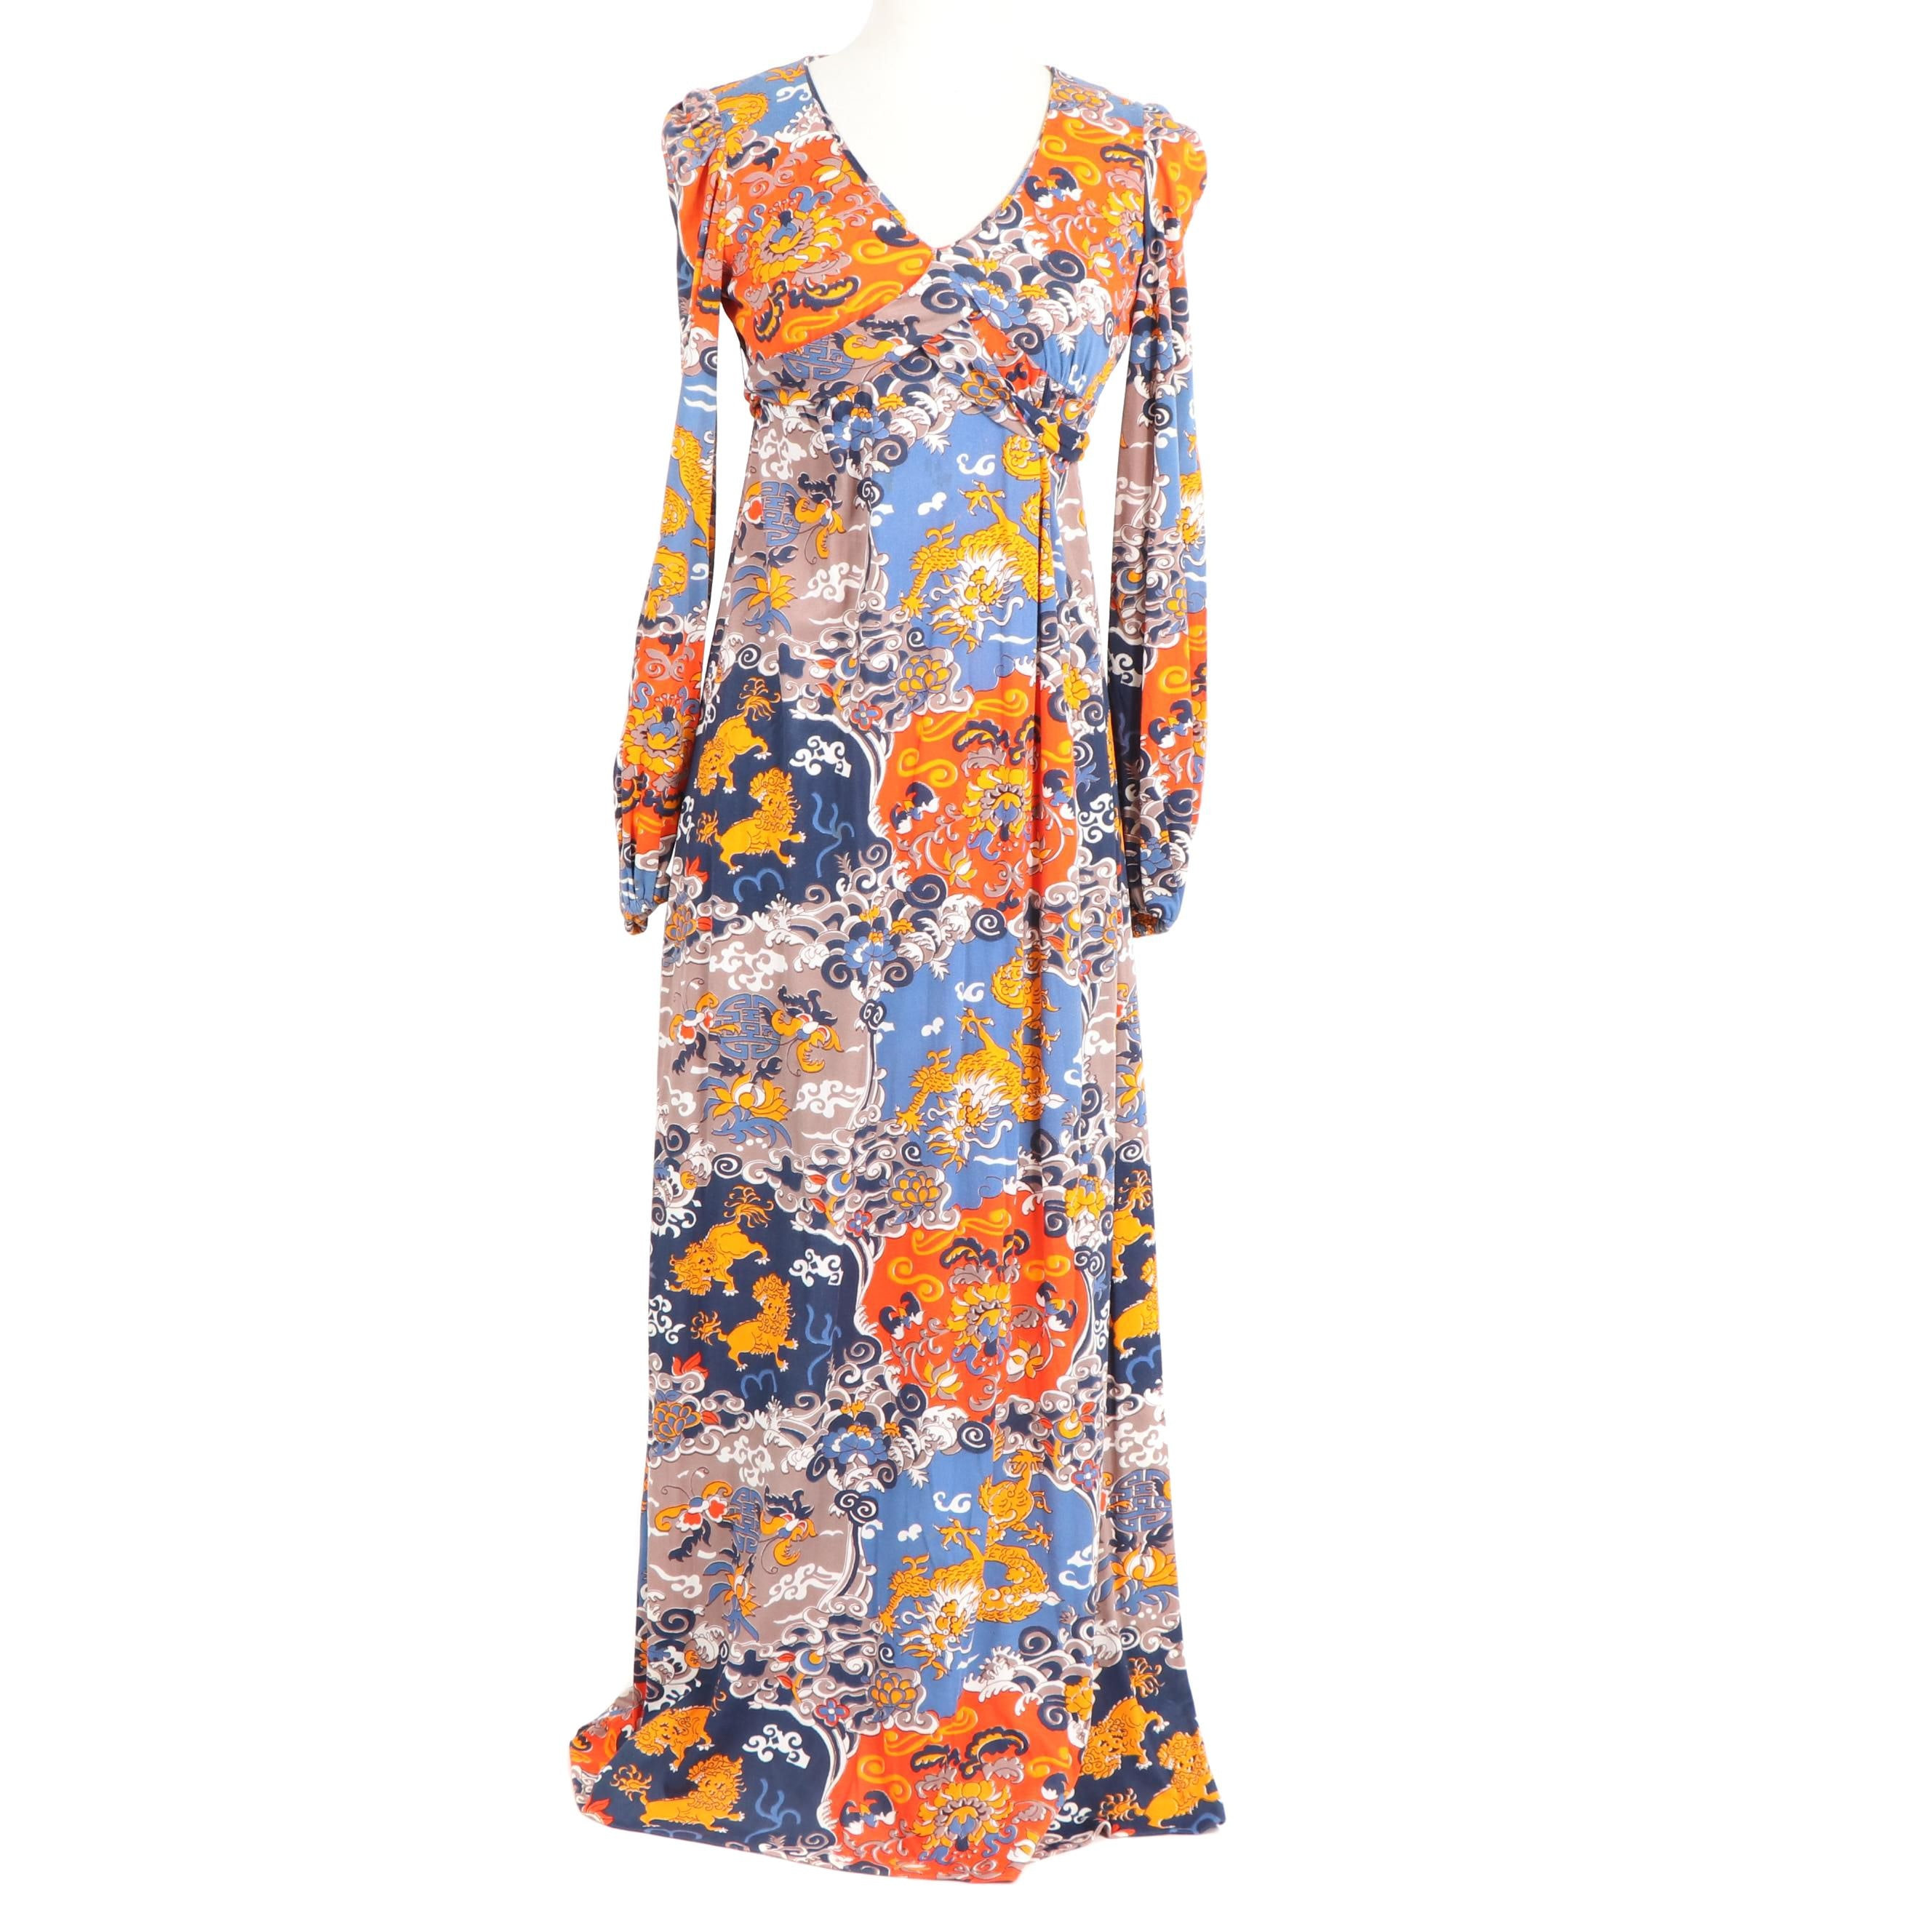 Women's Vintage Patricia Fair Asian Inspired Maxi Dress